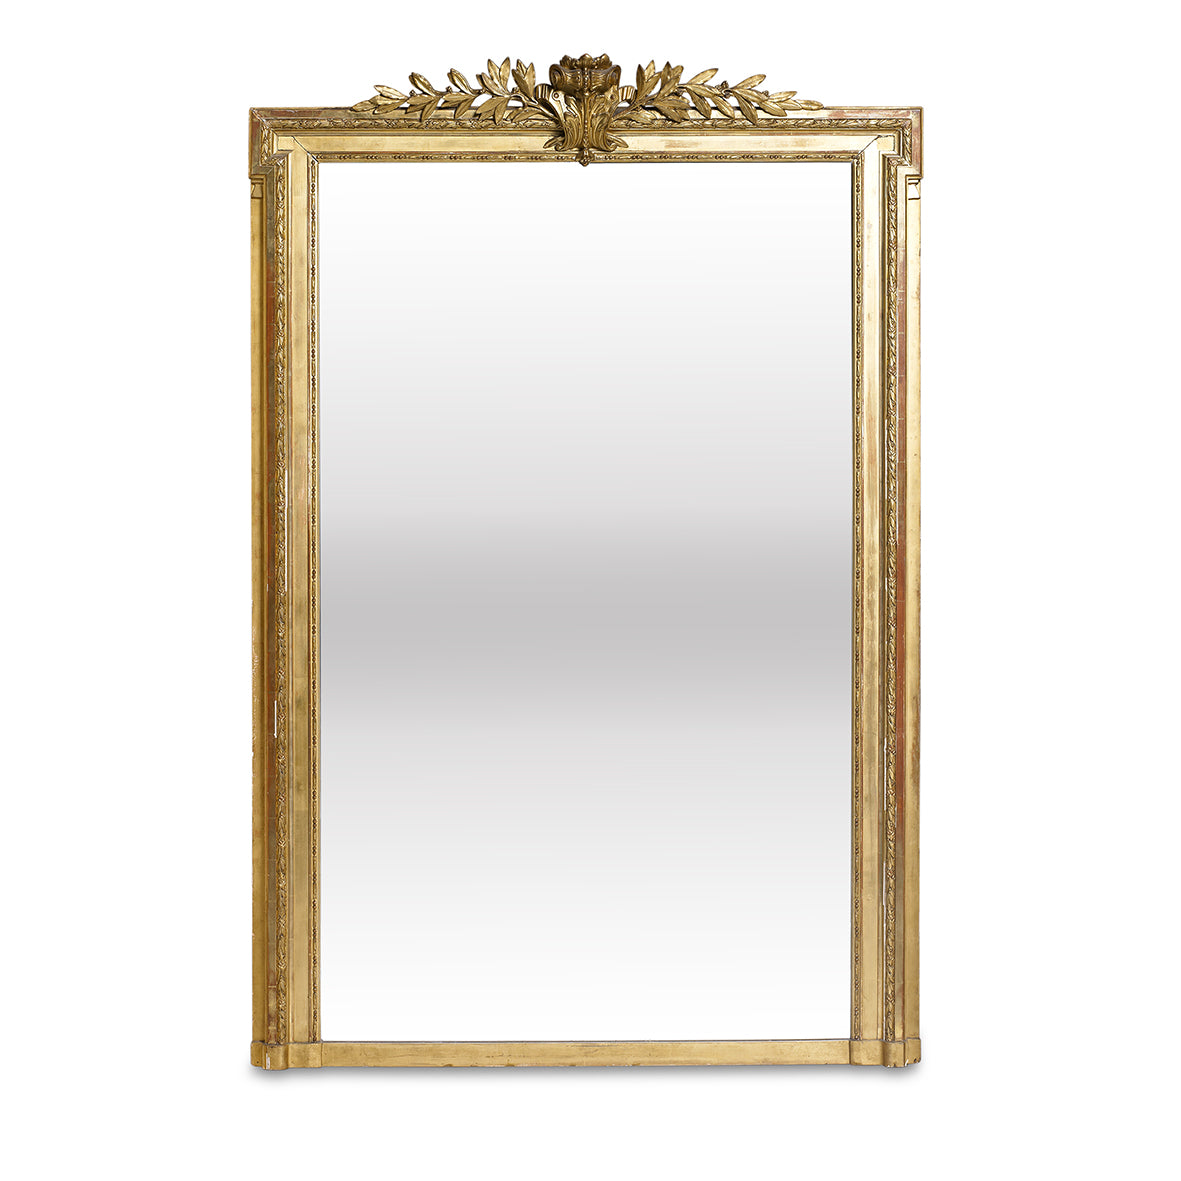 A fine and grand giltwood rectangular overmantel mirror, French 19th Century